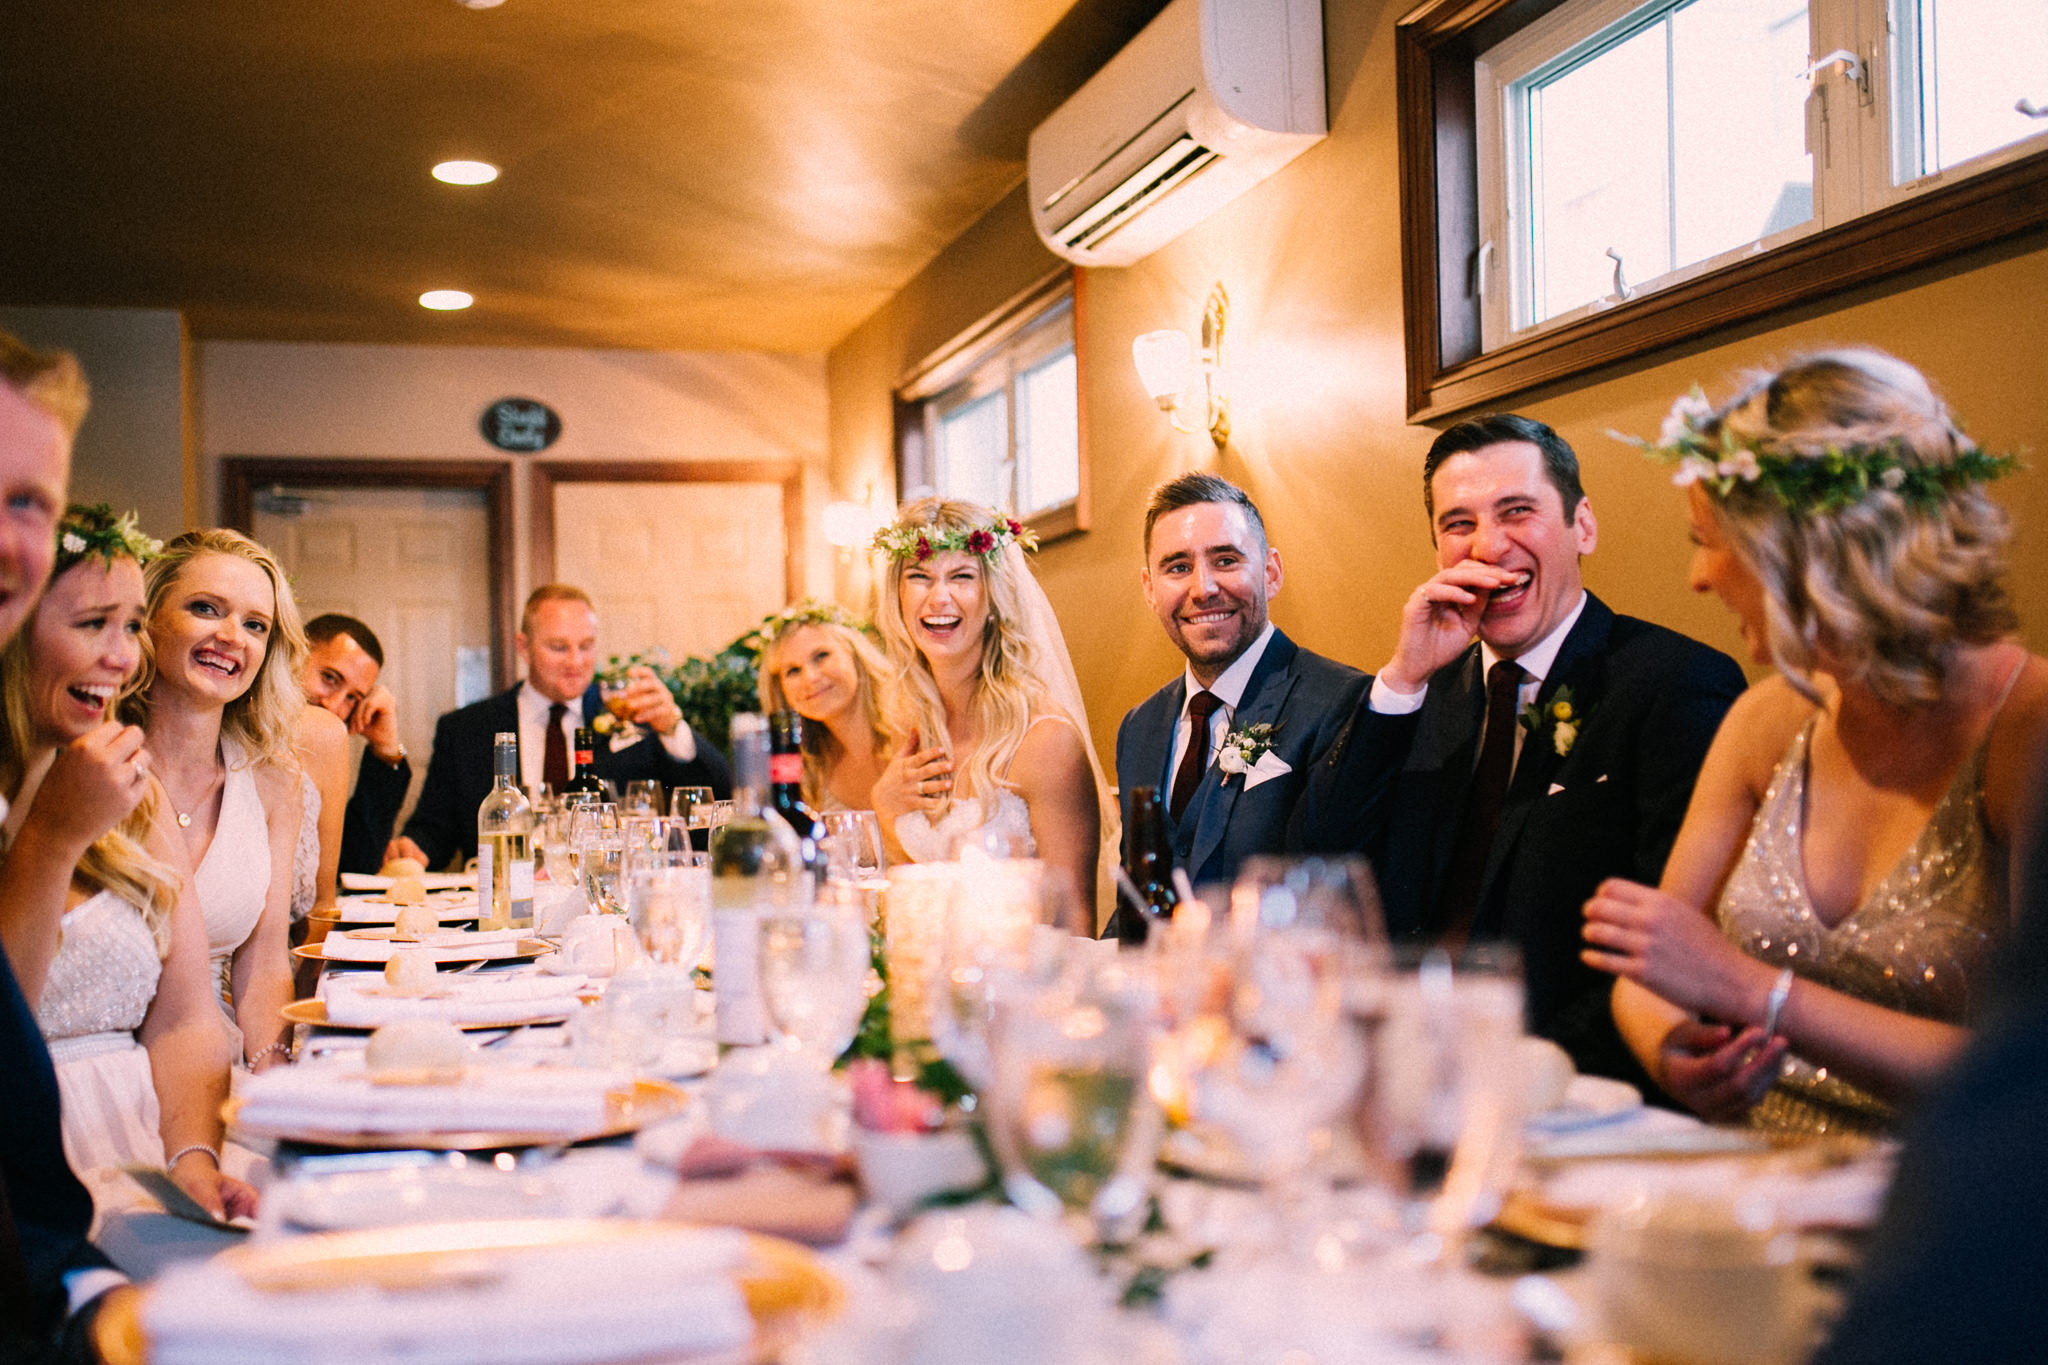 Muskoka lakeside wedding at Port Cunnington Lodge by Max Wong Photo (66)